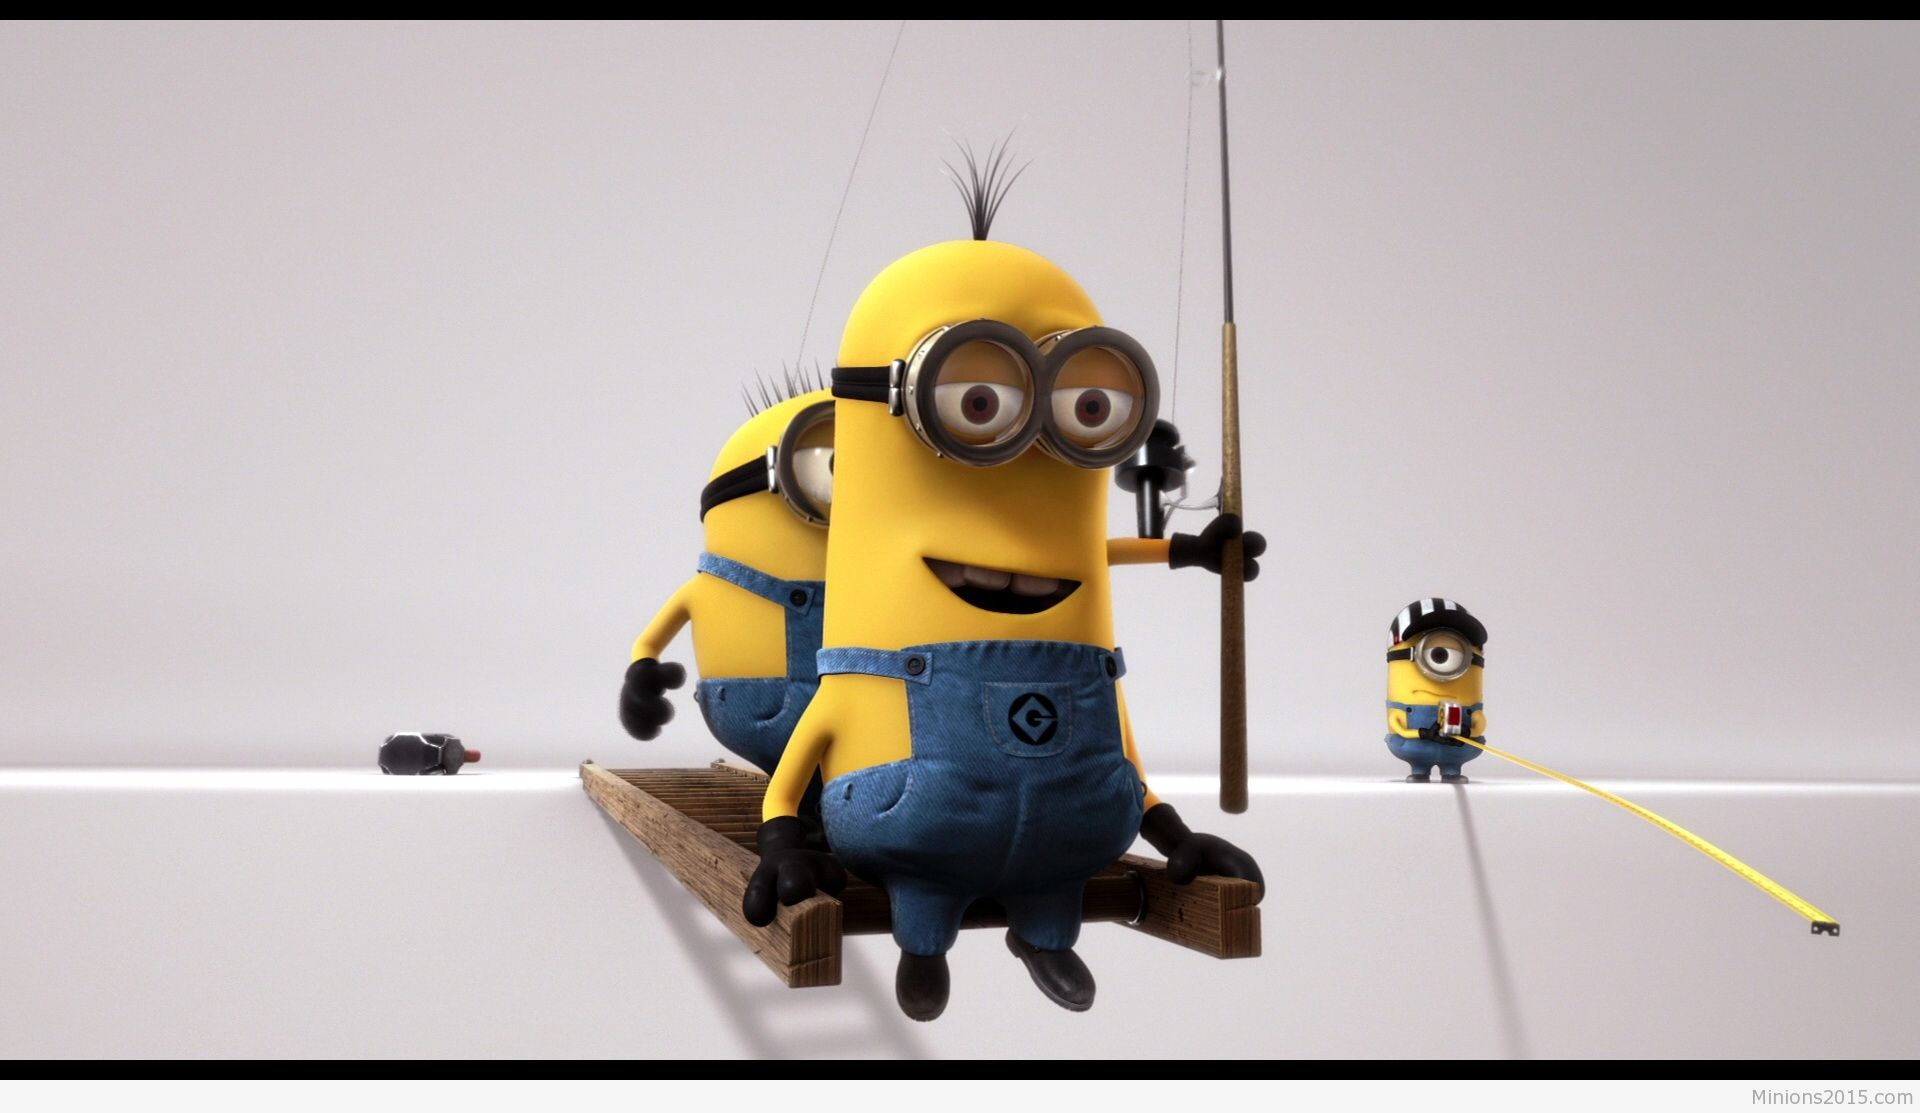 1920x1113 wallpapers-minions-hd-despicable-me-fondos-de-pantalla-